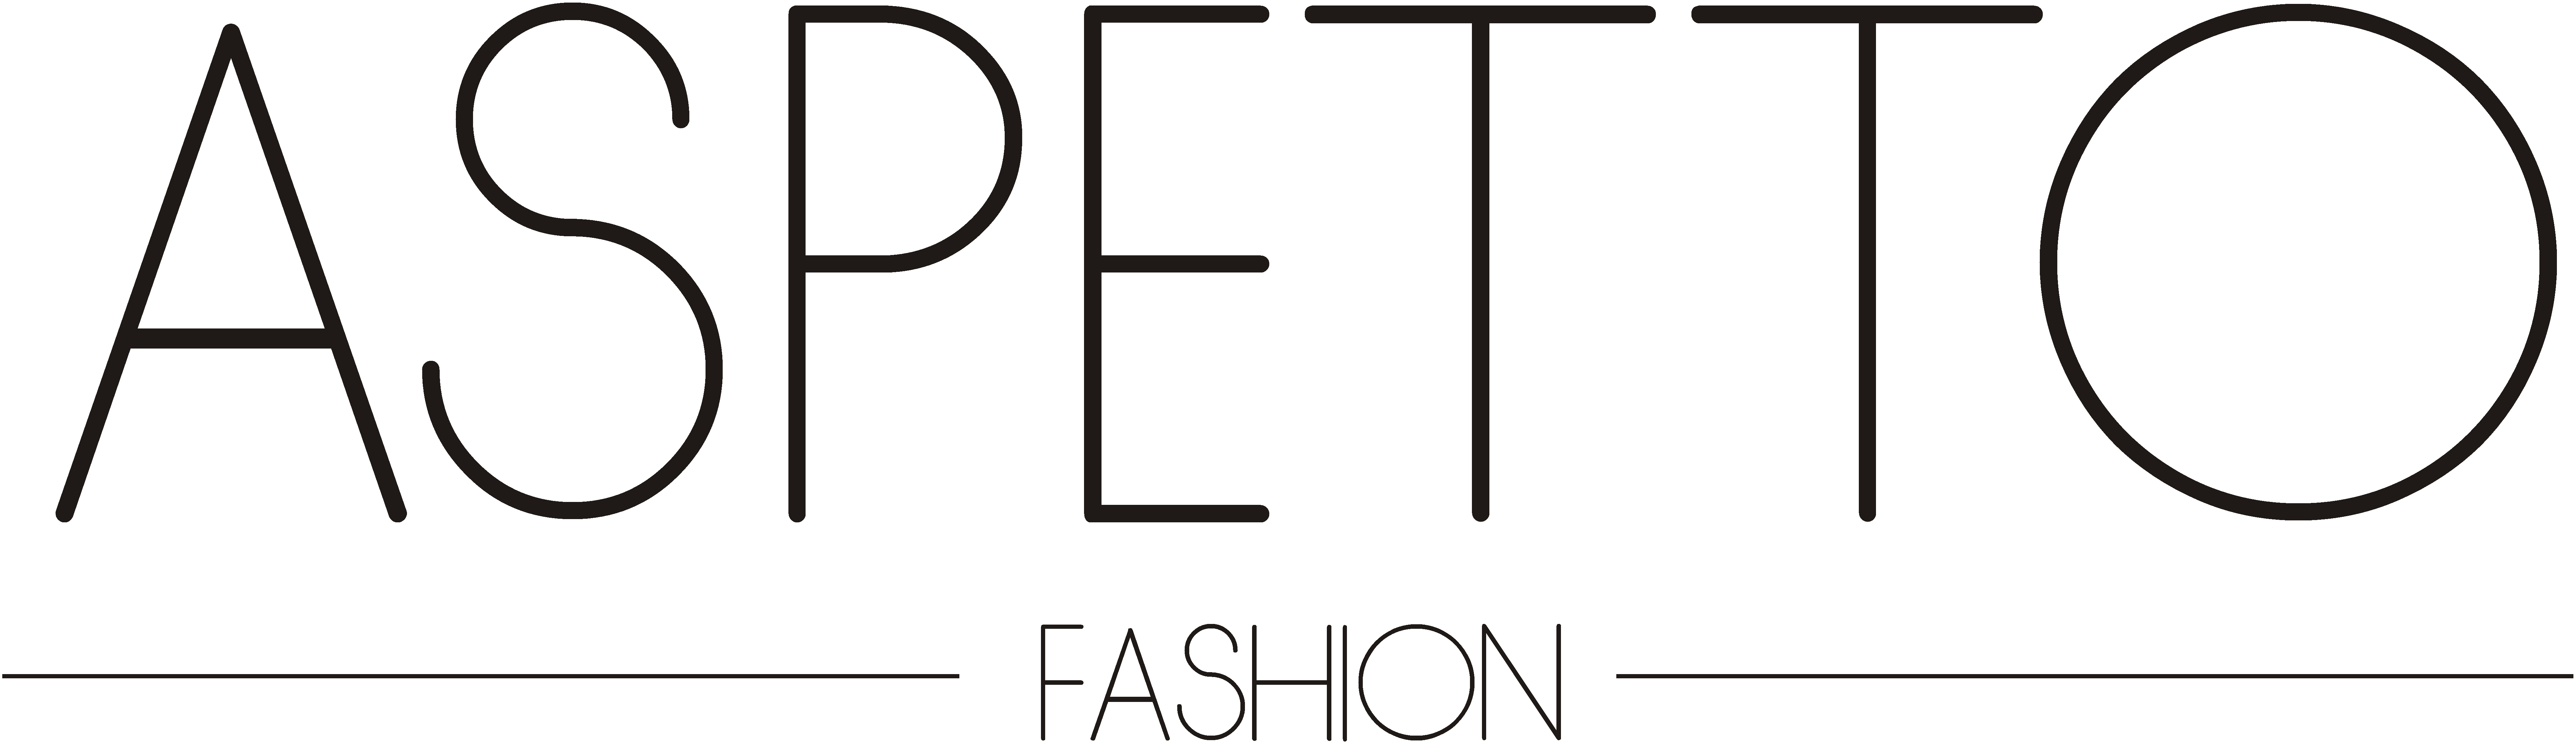 ASPETTO FASHION